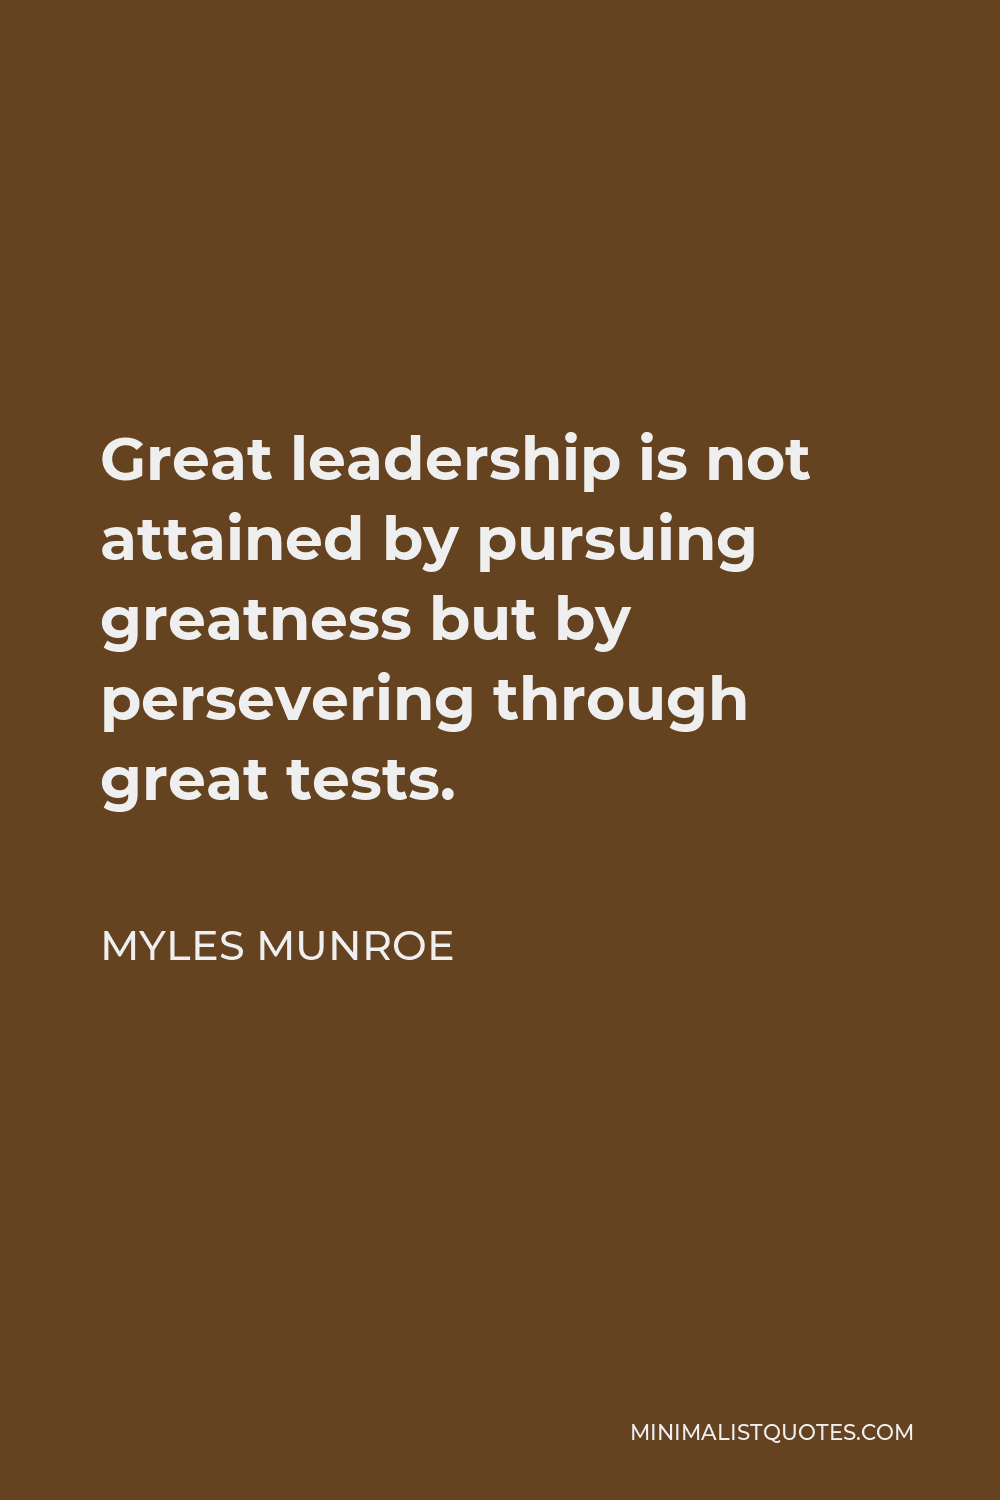 Myles Munroe Quote - Great leadership is not attained by pursuing greatness but by persevering through great tests.